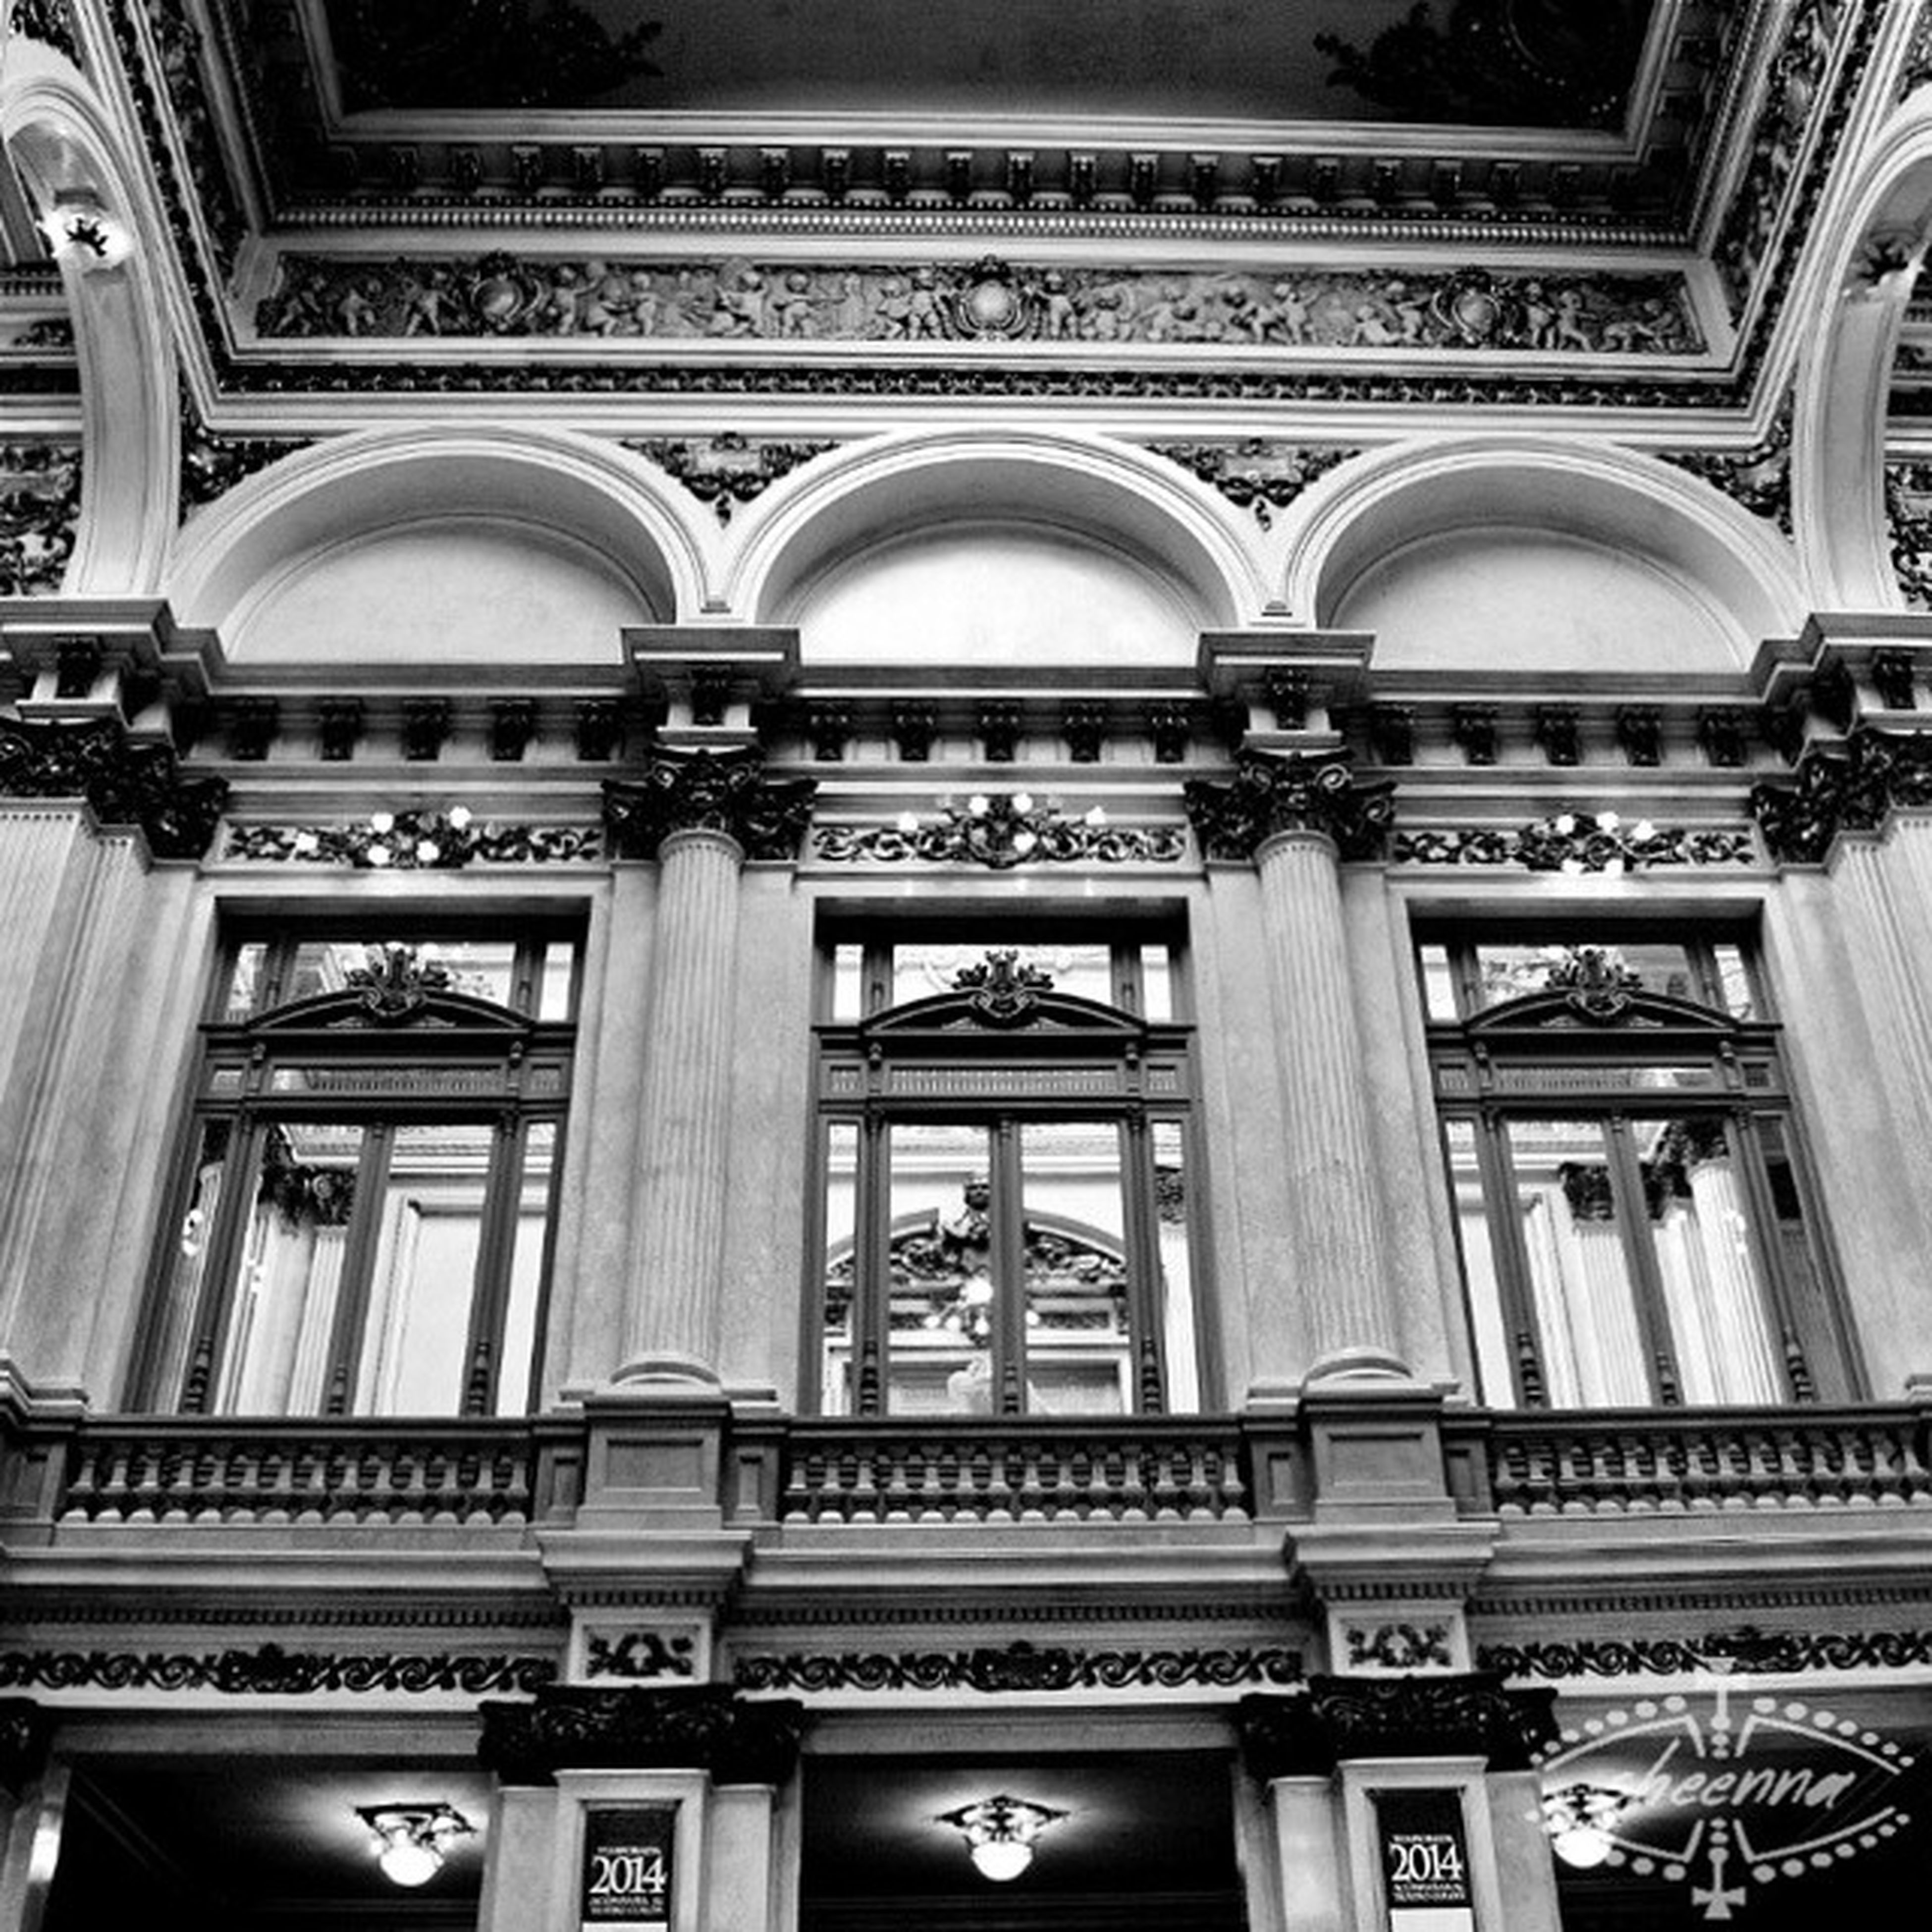 architecture, built structure, low angle view, window, building exterior, arch, ornate, indoors, building, ceiling, architectural feature, design, architectural column, history, no people, balcony, pattern, day, in a row, facade